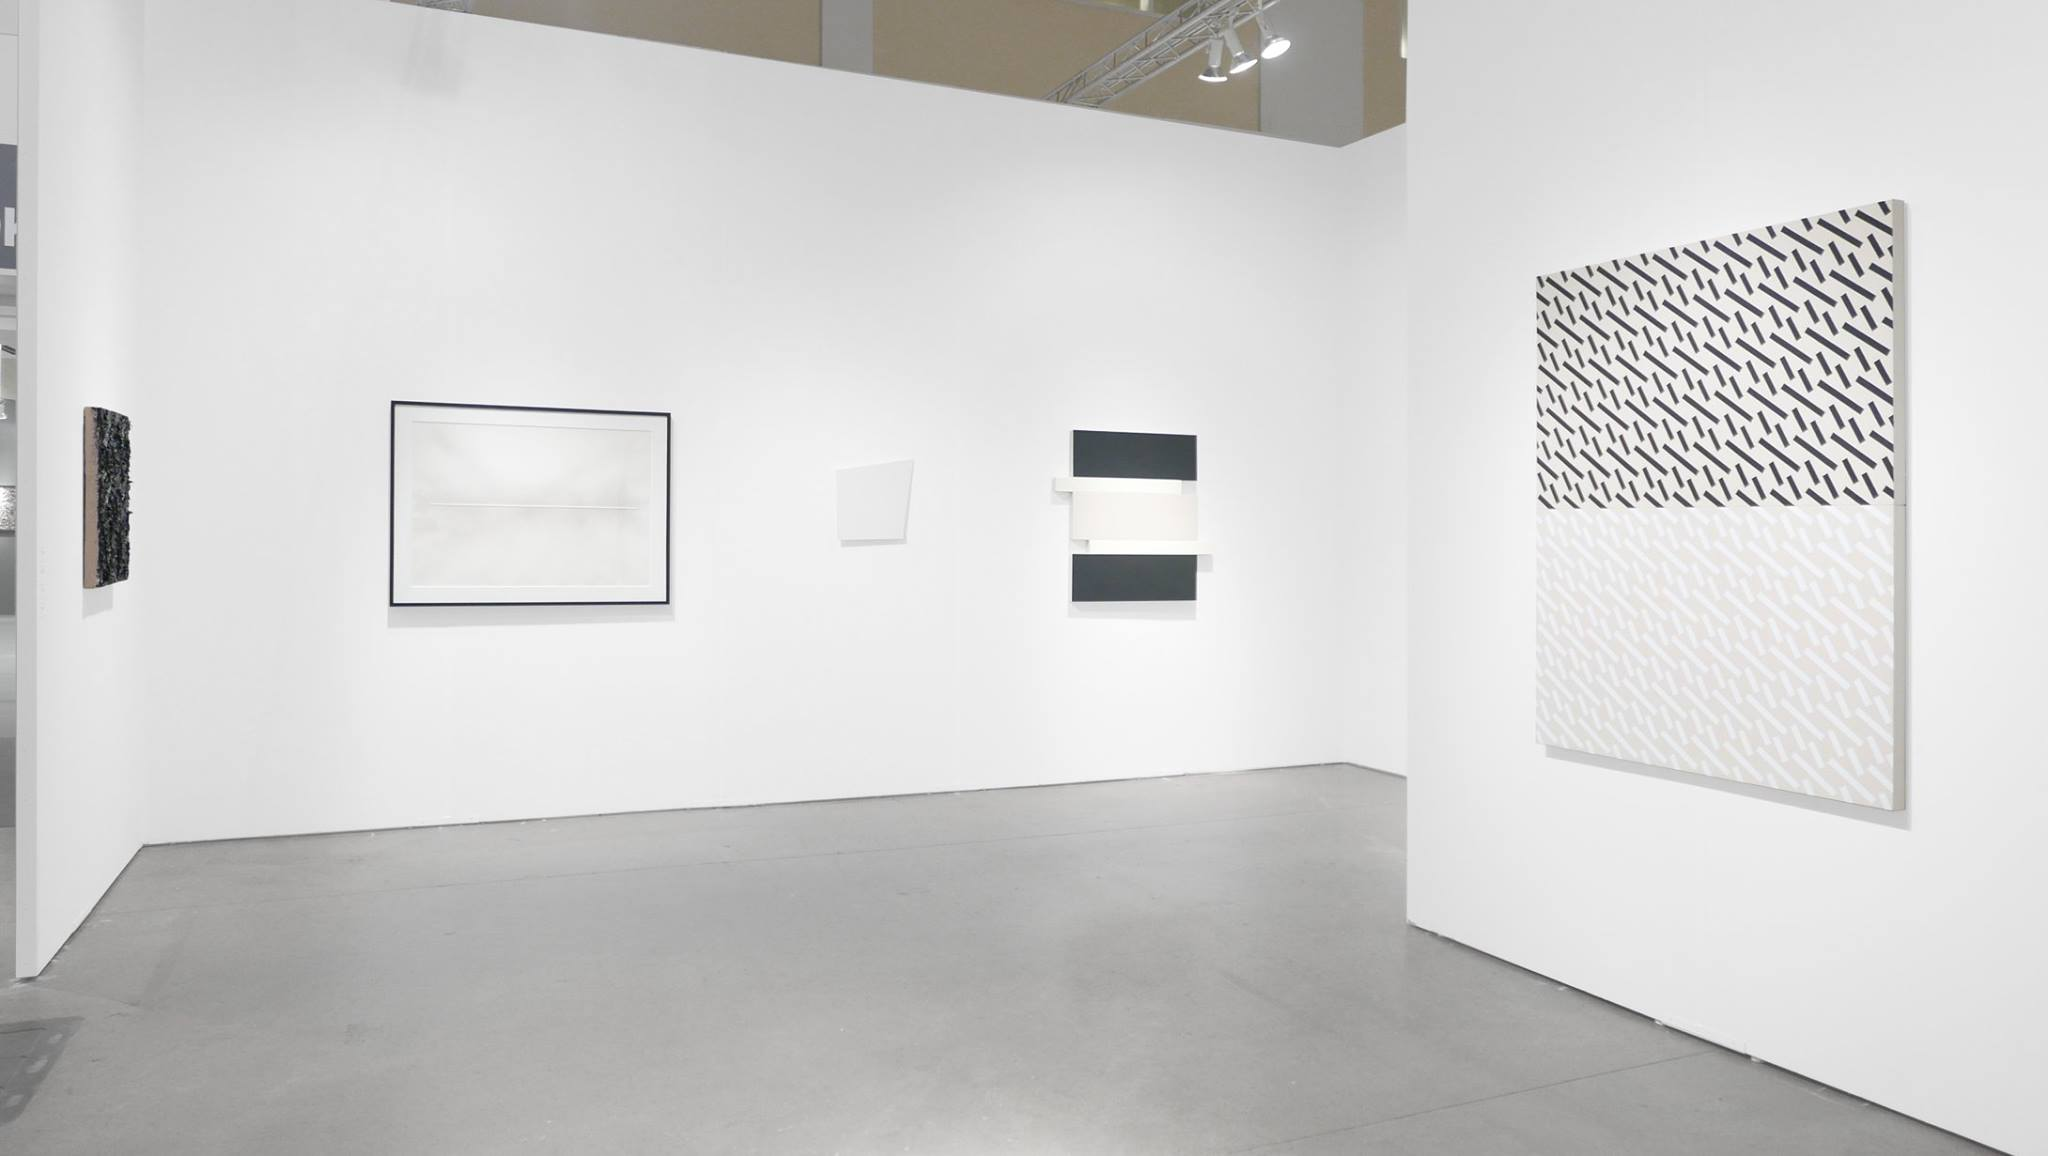 EXPO Chicago 2016, Peter Blake Gallery Booth 702, Installation View_8.jpg